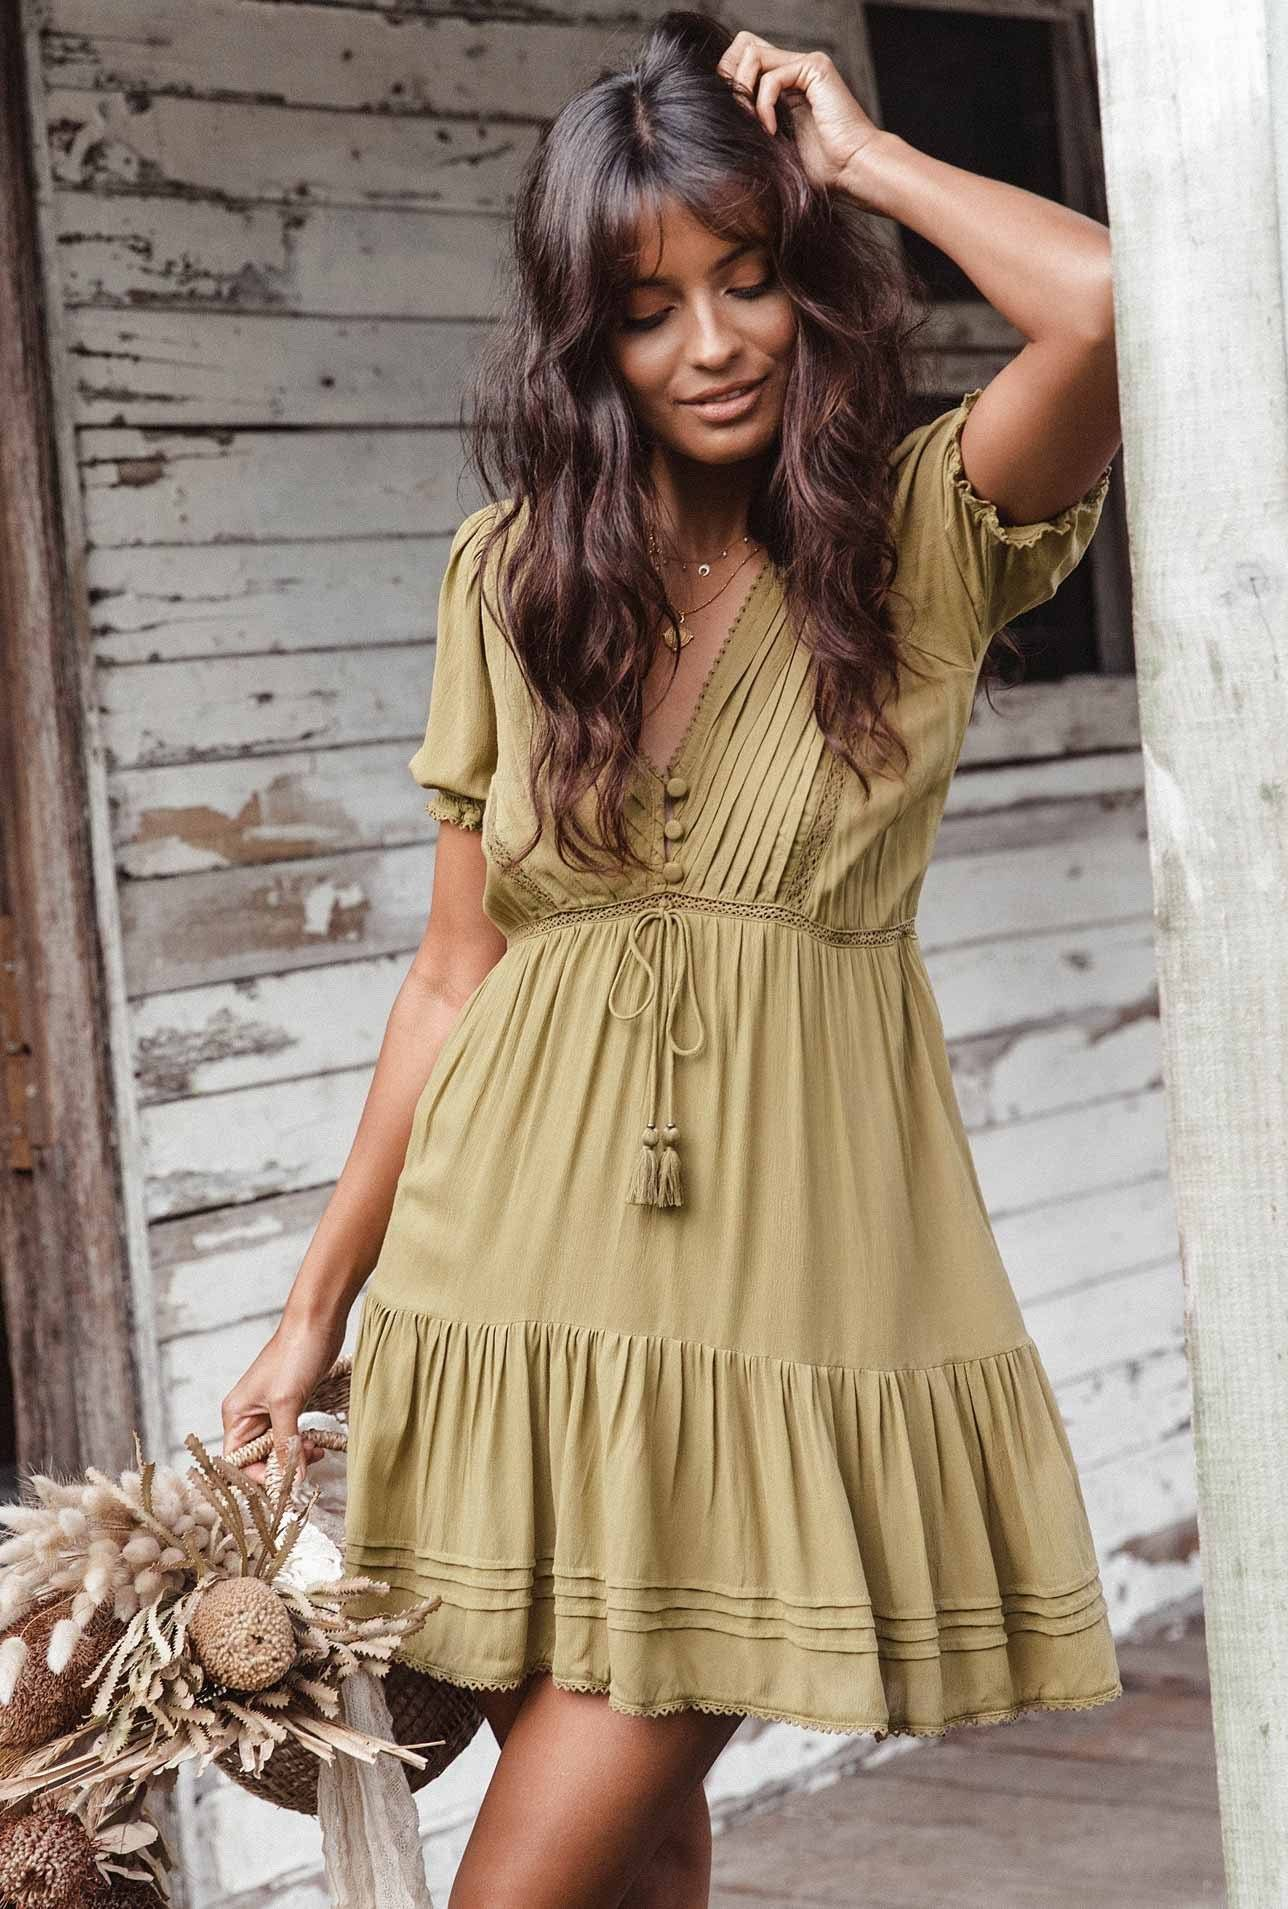 Hazel Baby Doll Dress - Olive Pastel Designs